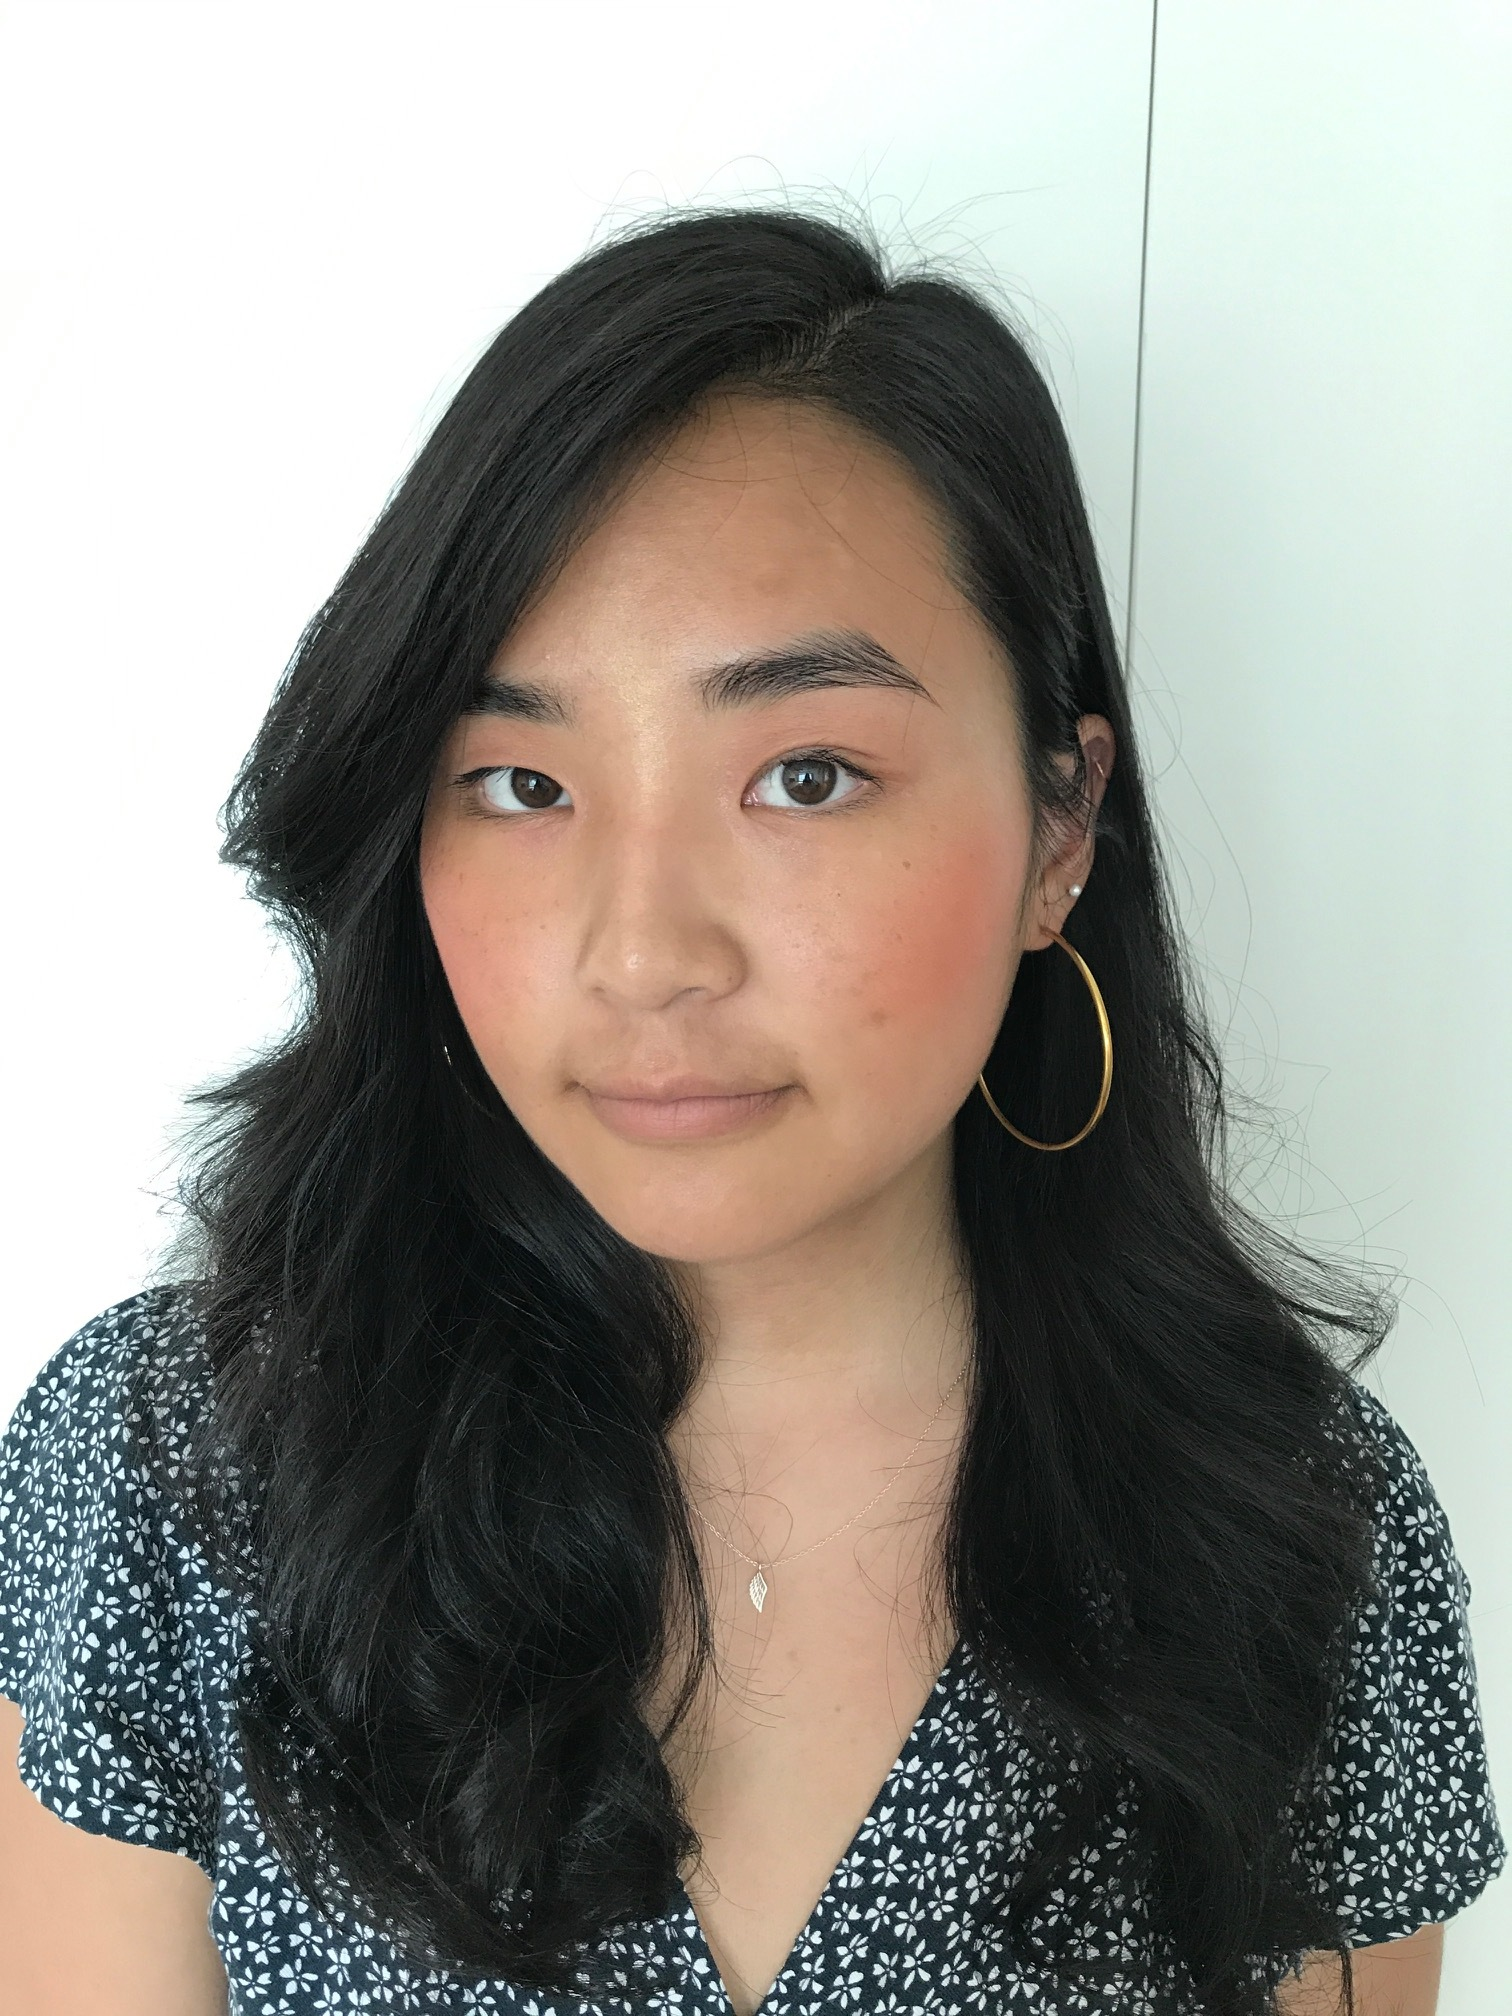 Sarafina Oh - Wellesley College Liaison Sarafina Oh is a freshman at Wellesley College.In the past, she has volunteered at music foundation for the disabled, Daniel's Music Foundation, in New York City. She also volunteered at Mount Sinai furthering dermatology research.